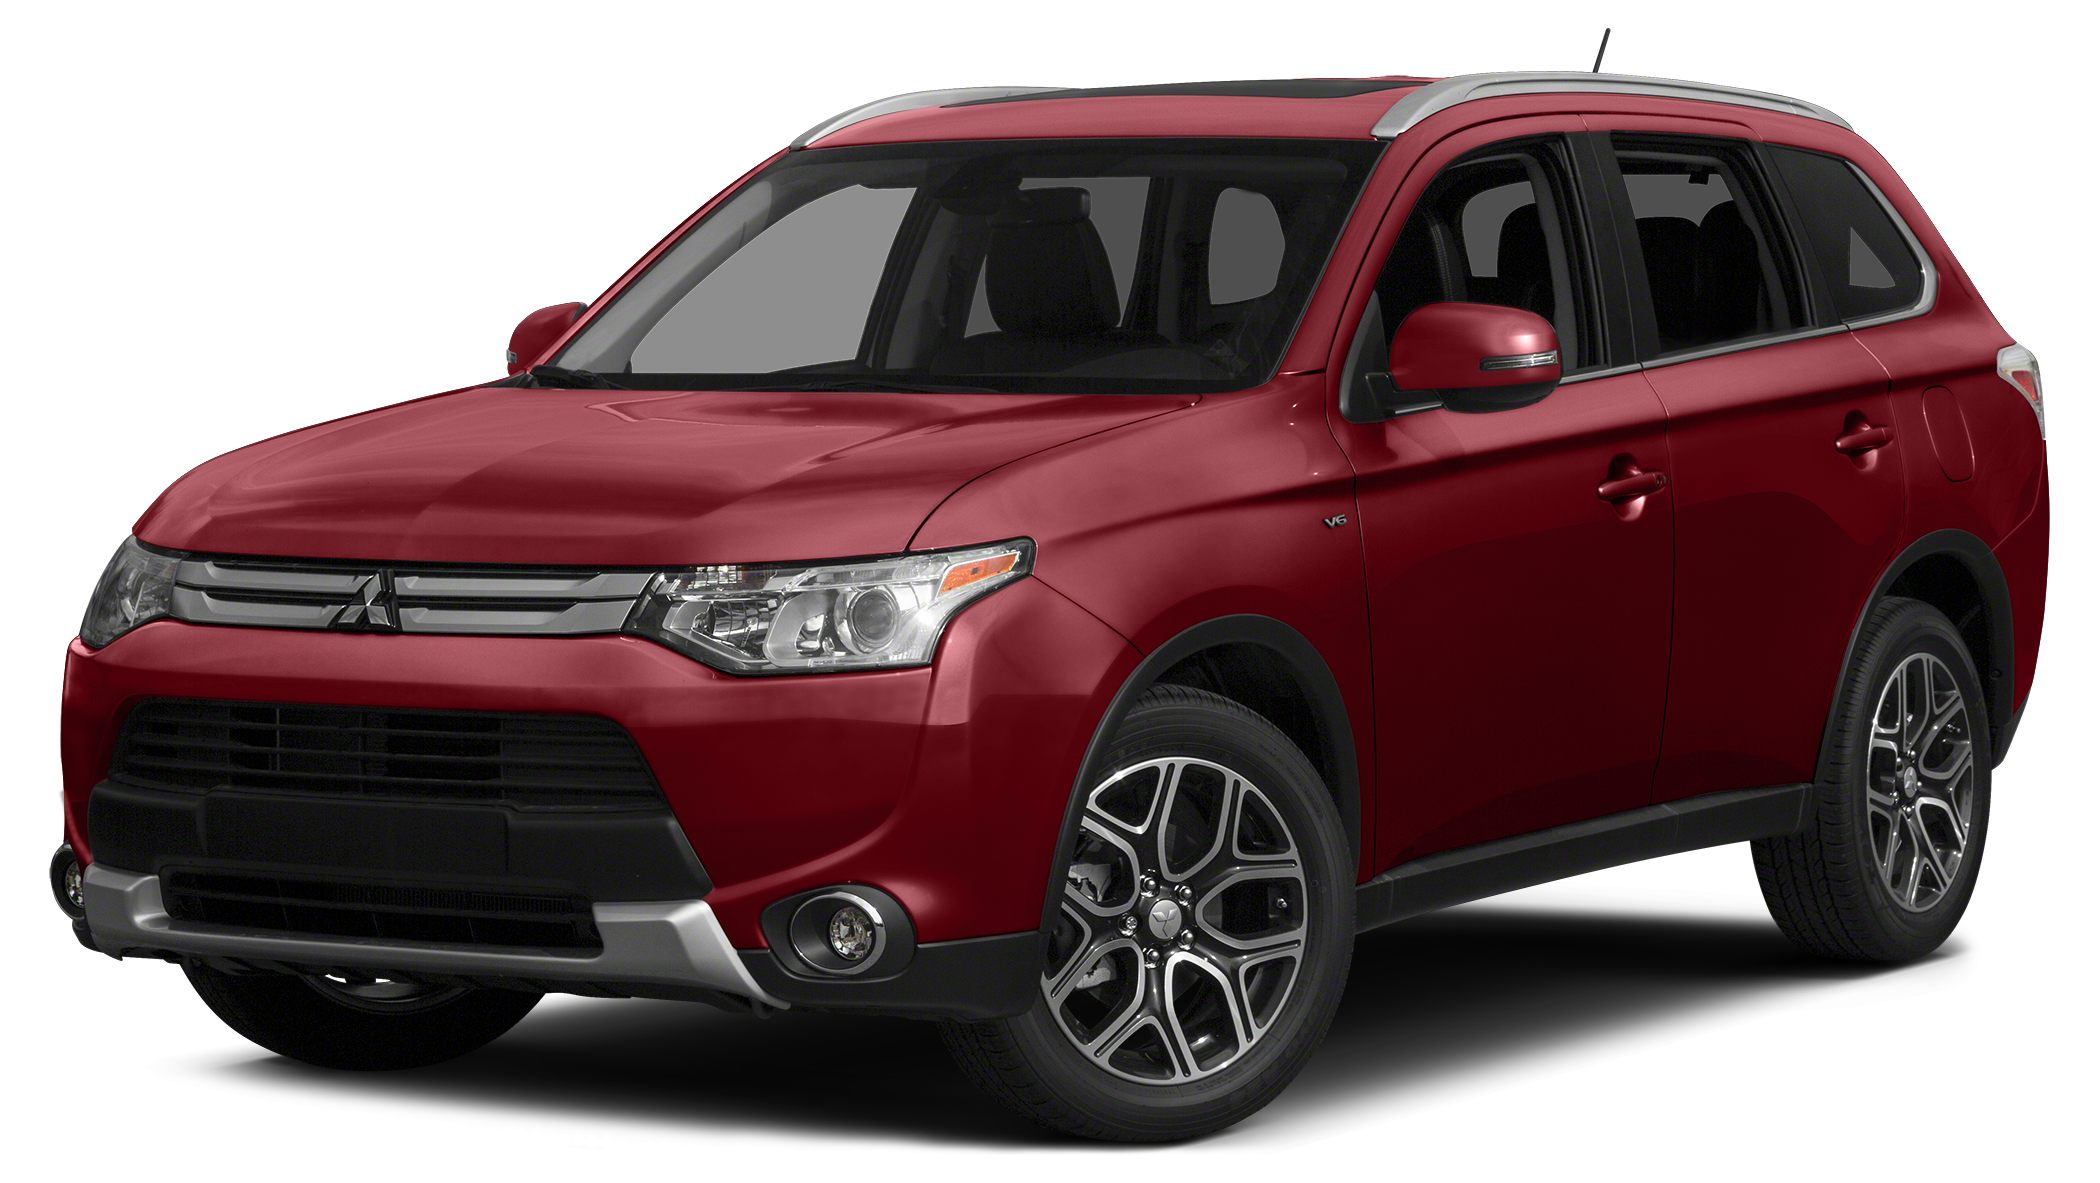 2015 Mitsubishi Outlander SE Mp3 and traction control make this 2015 Mitsubishi Outlander SE one lu